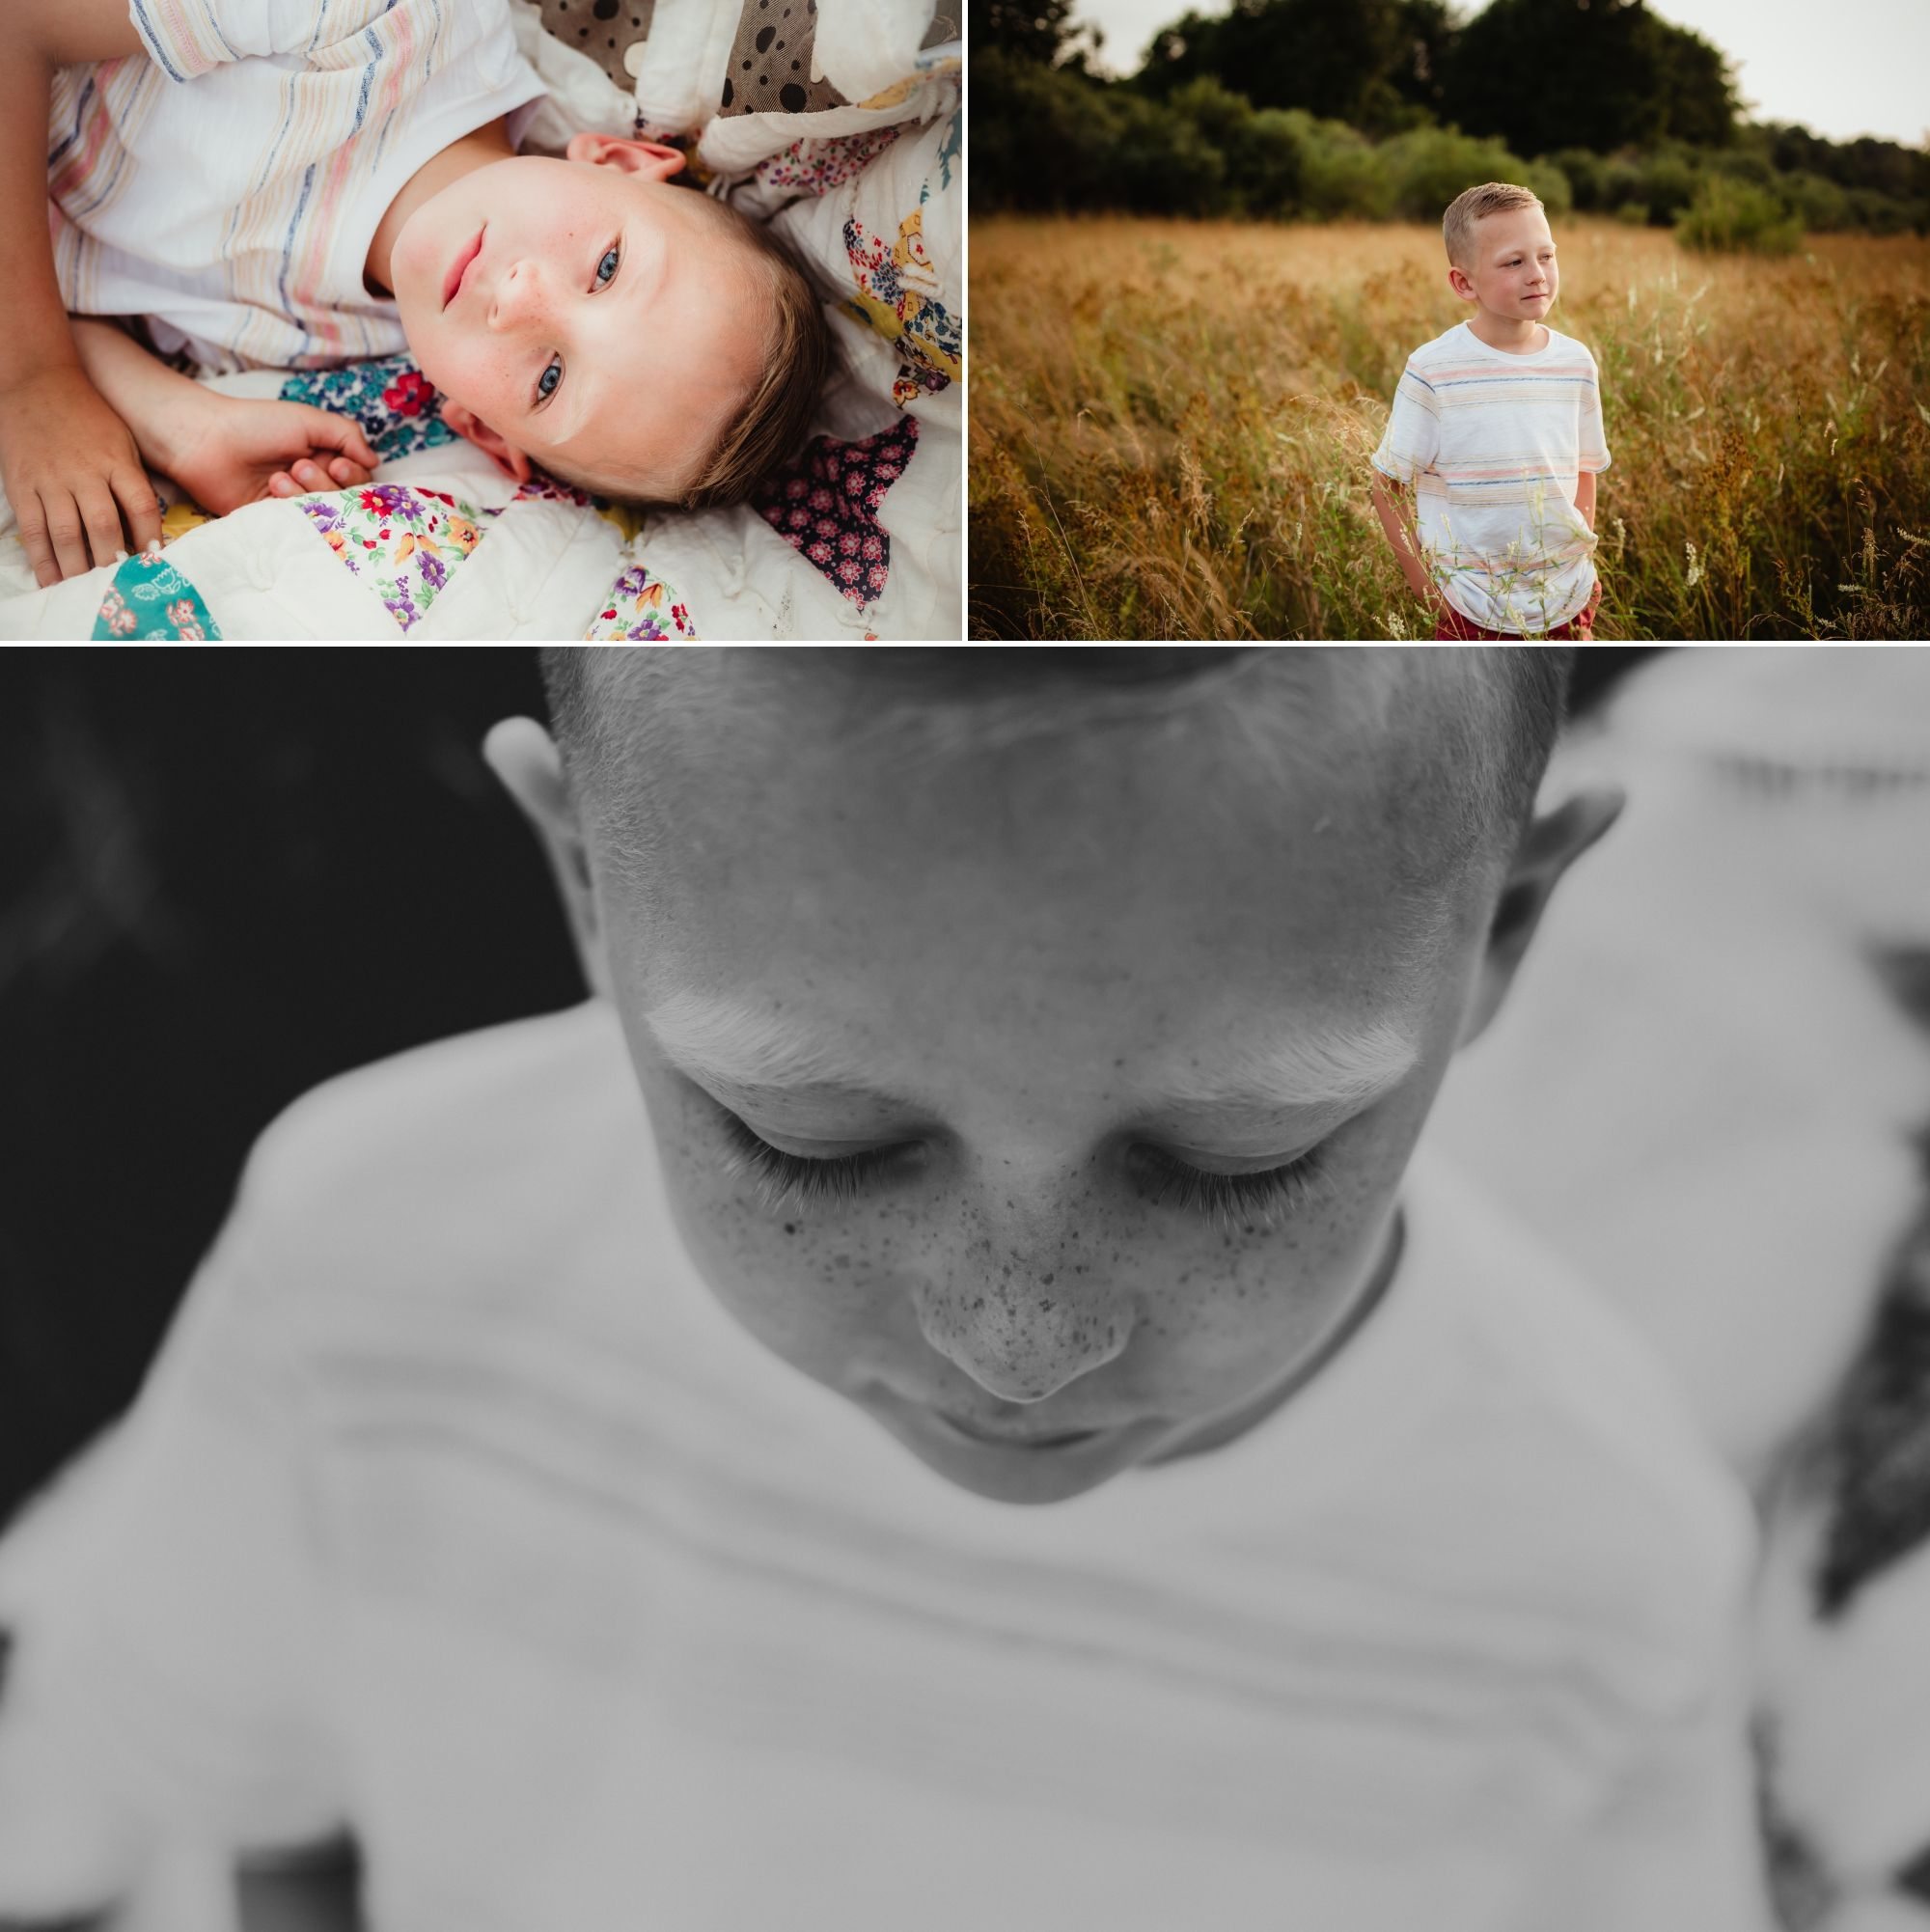 Collage of young blonde boy lying on a quilt and standing in a field. Black and white photo of his freckles.